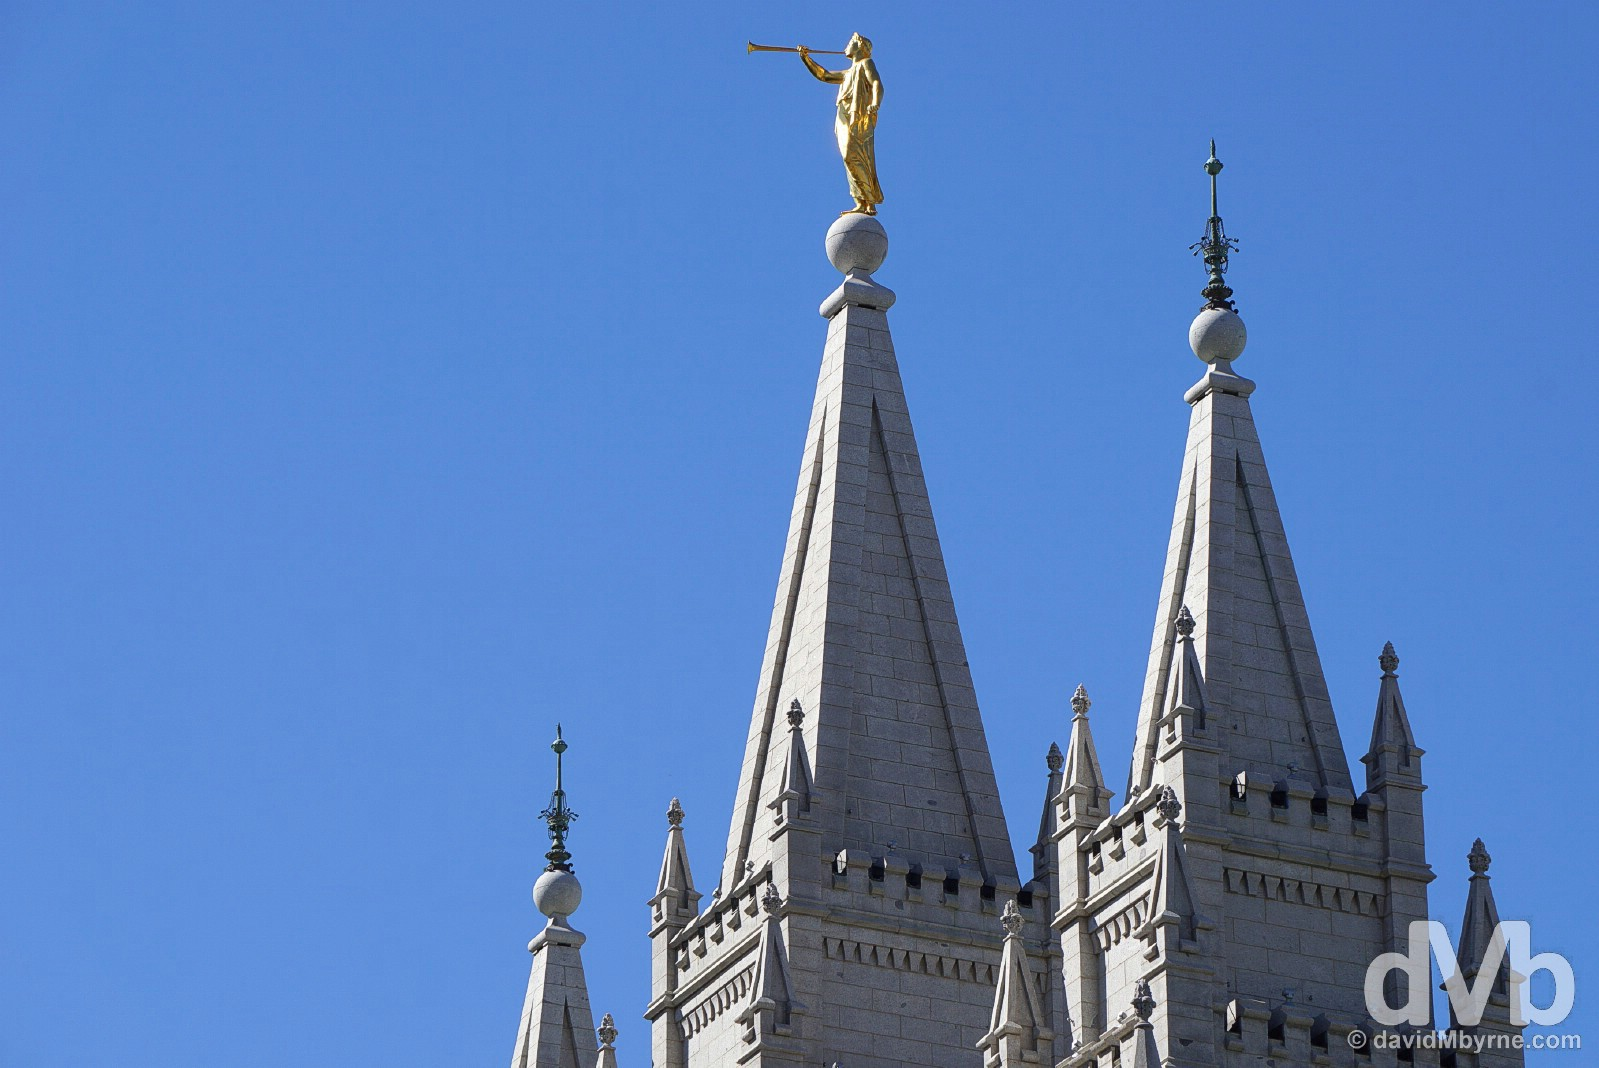 The Angel Moroni Statue atop the central spire of the Salt Lake Temple in Temple Square, Salt Lake City, Utah, USA. September 7, 2016.